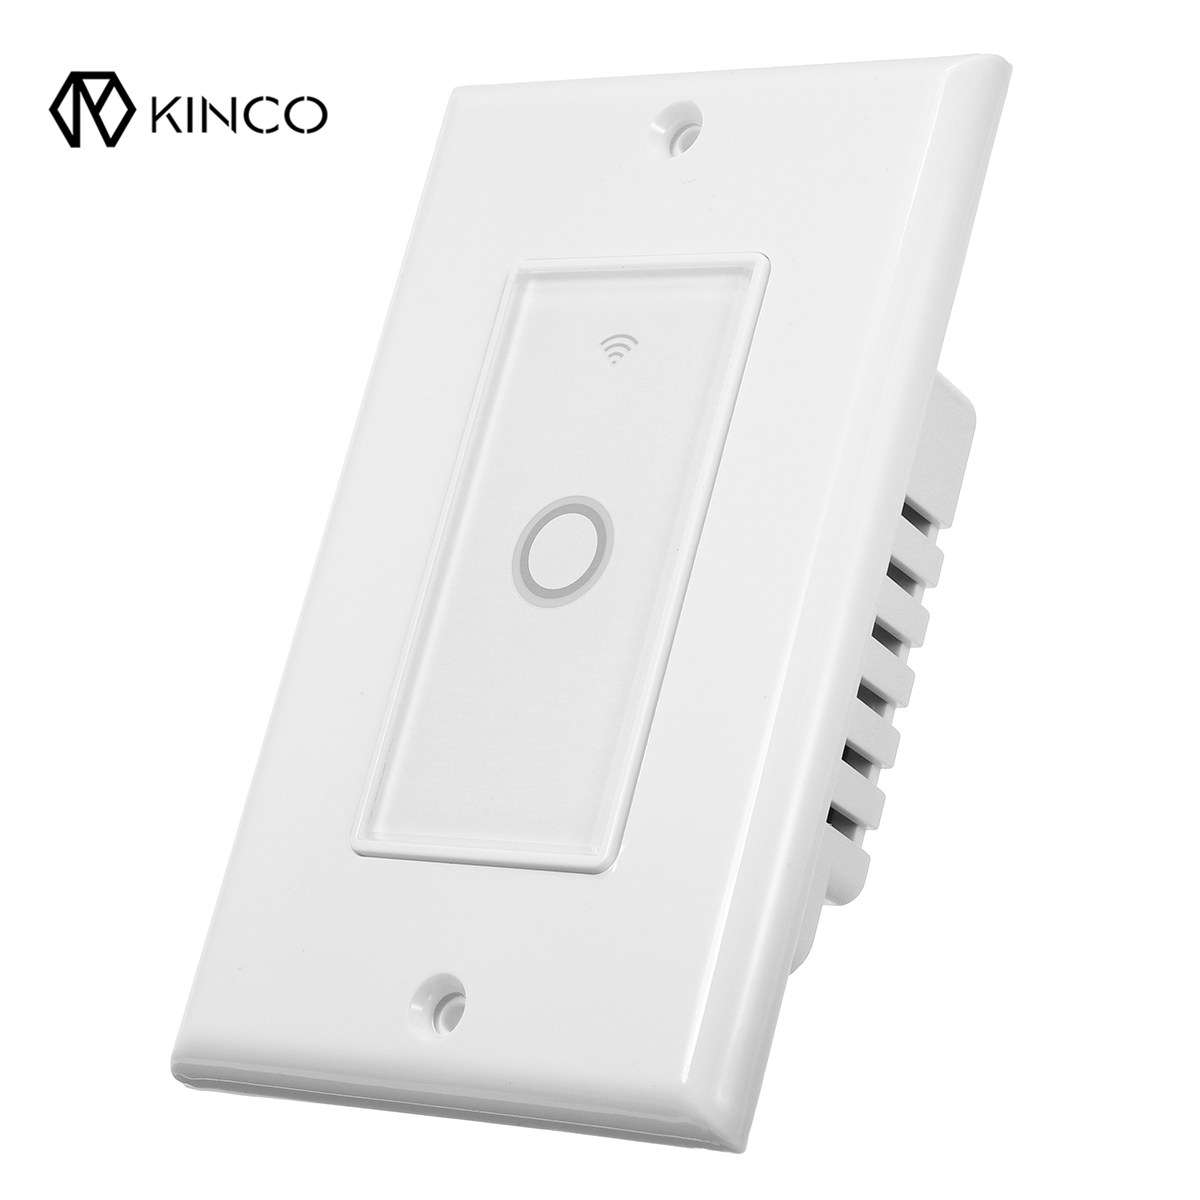 Kinco Durable 110V WIFI Smart Wall Switch Touch Panel Timing APP Remote Control For Alexa/Google Home Assistant